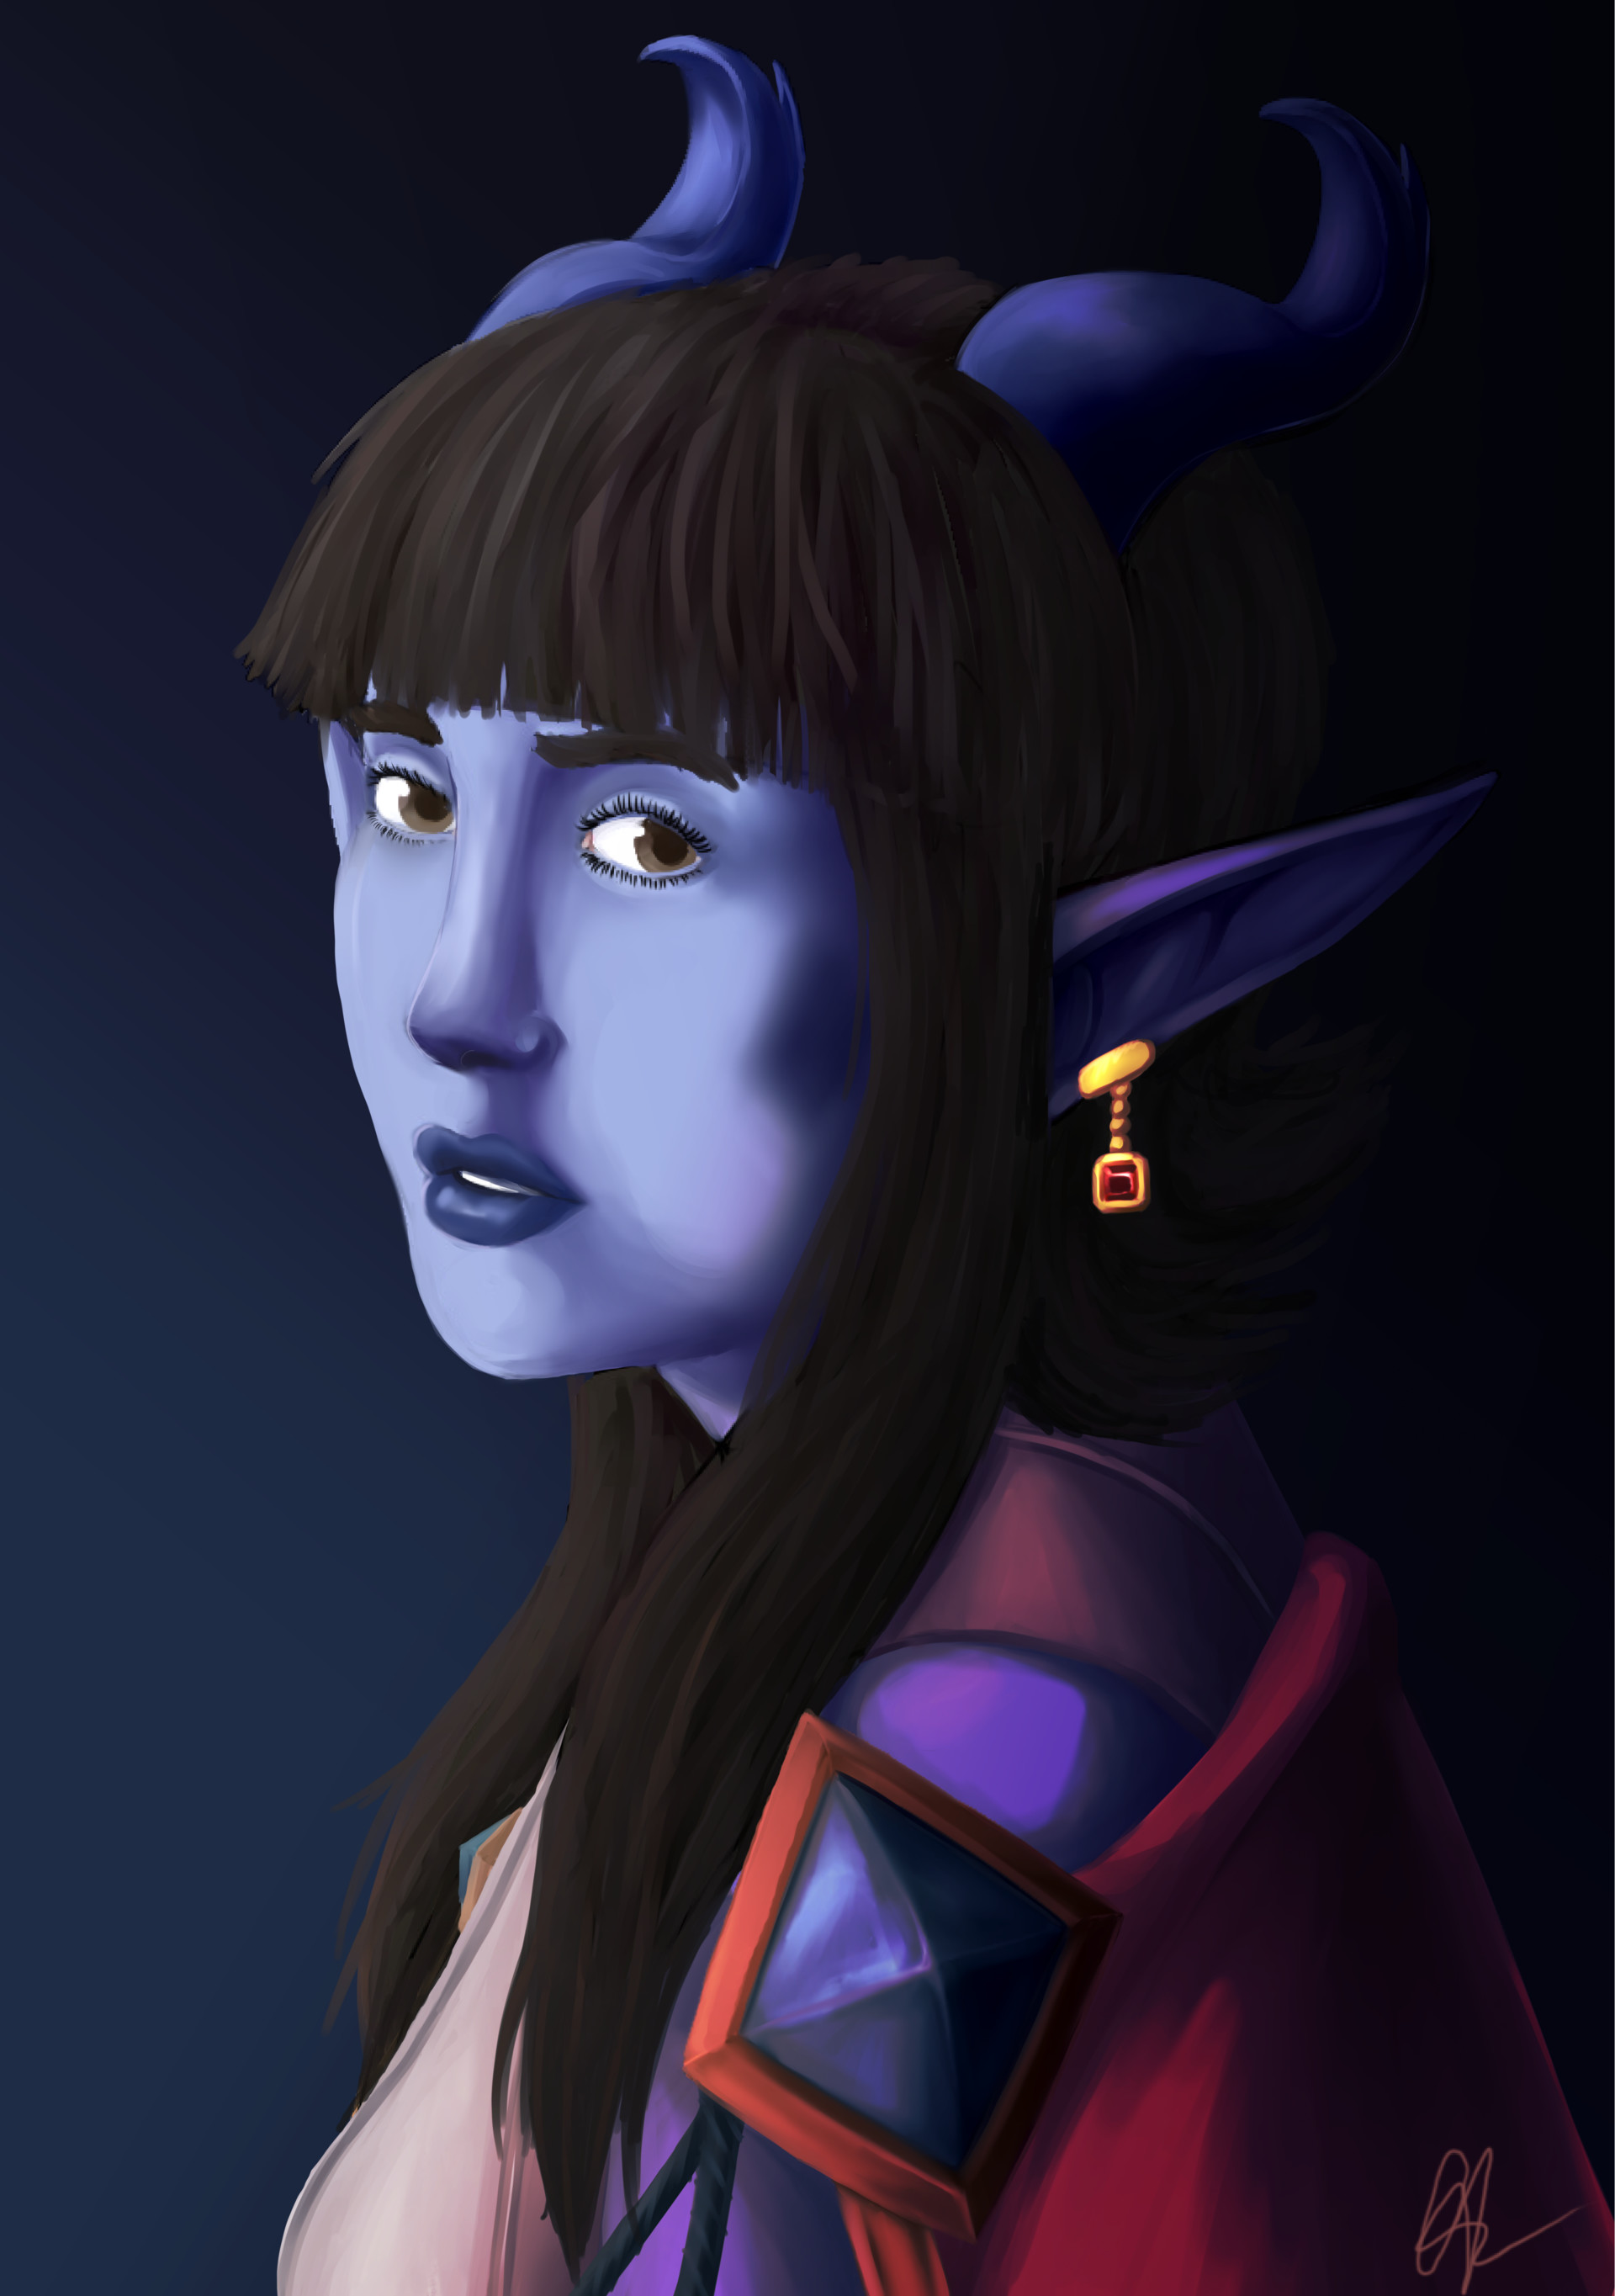 Artstation Tiefling With The Ruby Earring Repaint Charity Lauhon